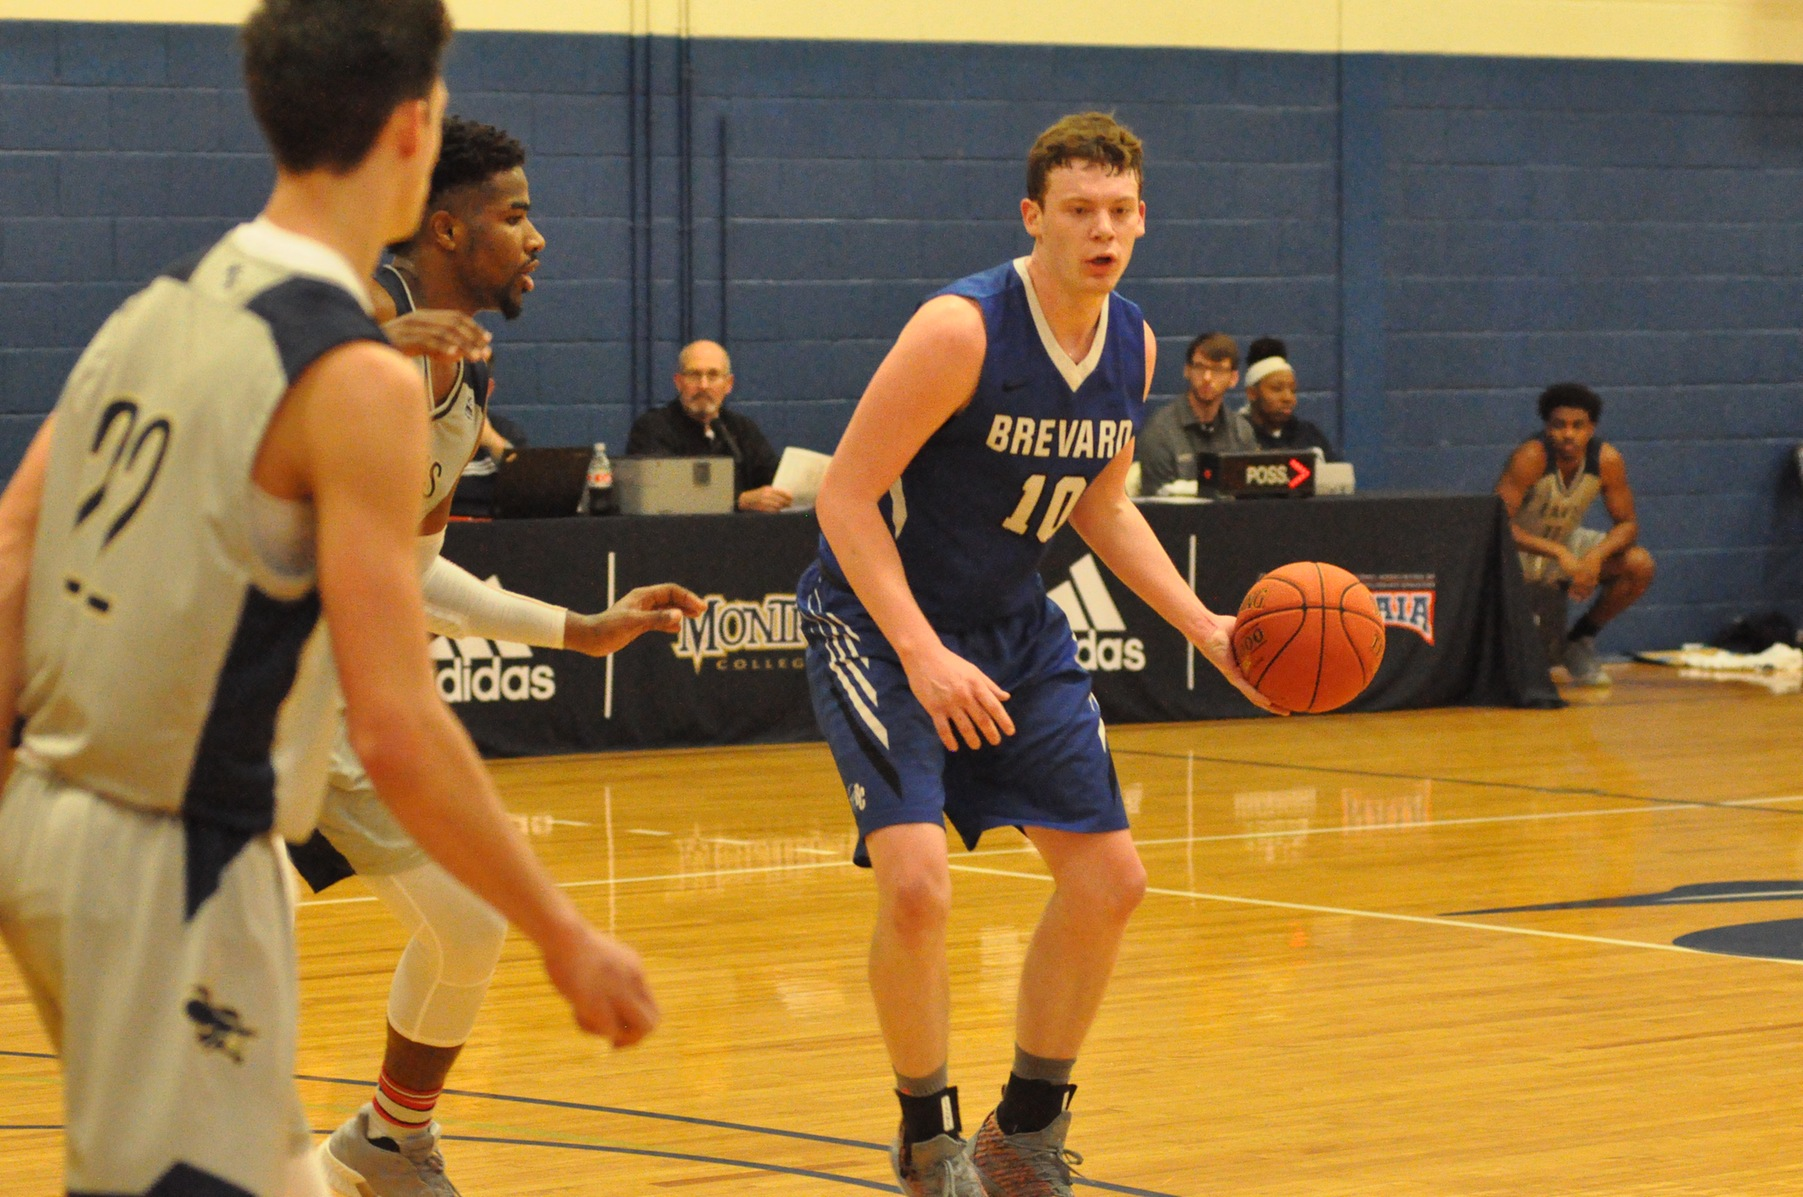 Montreat Tops Brevard on New Year's Eve